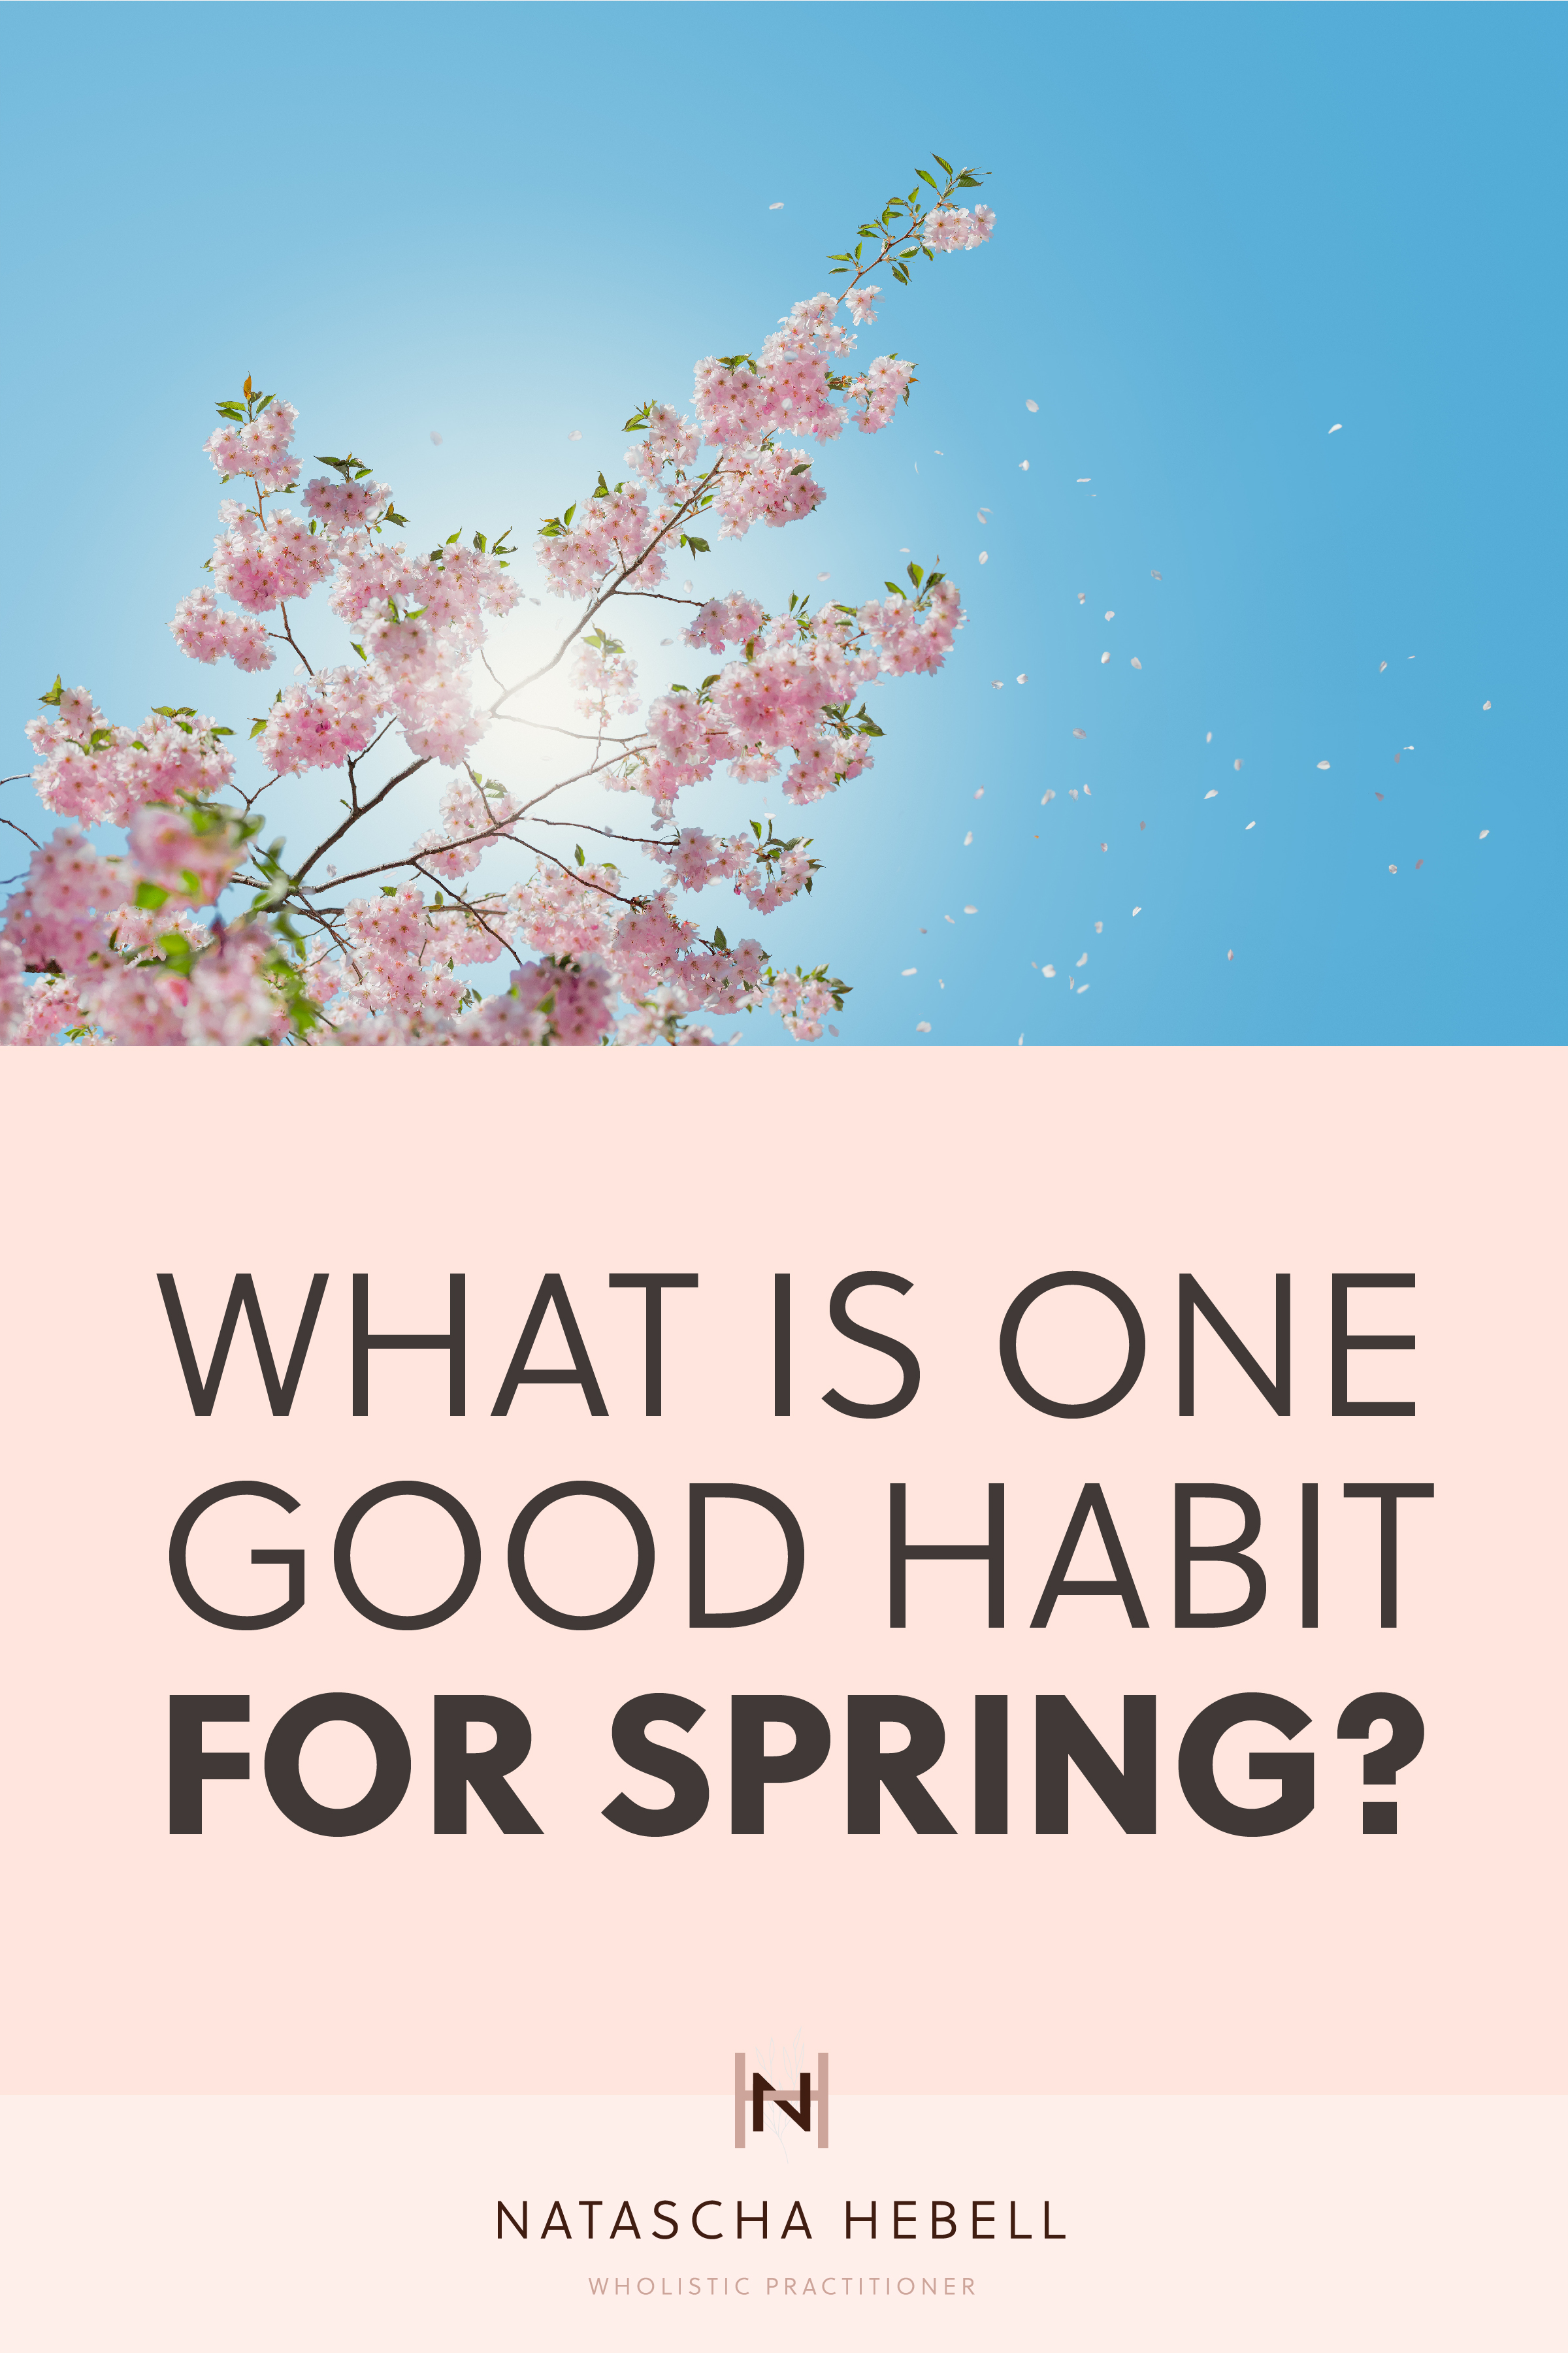 What is one good habit for spring? | Natascha Hebell, Wholistic Practitioner